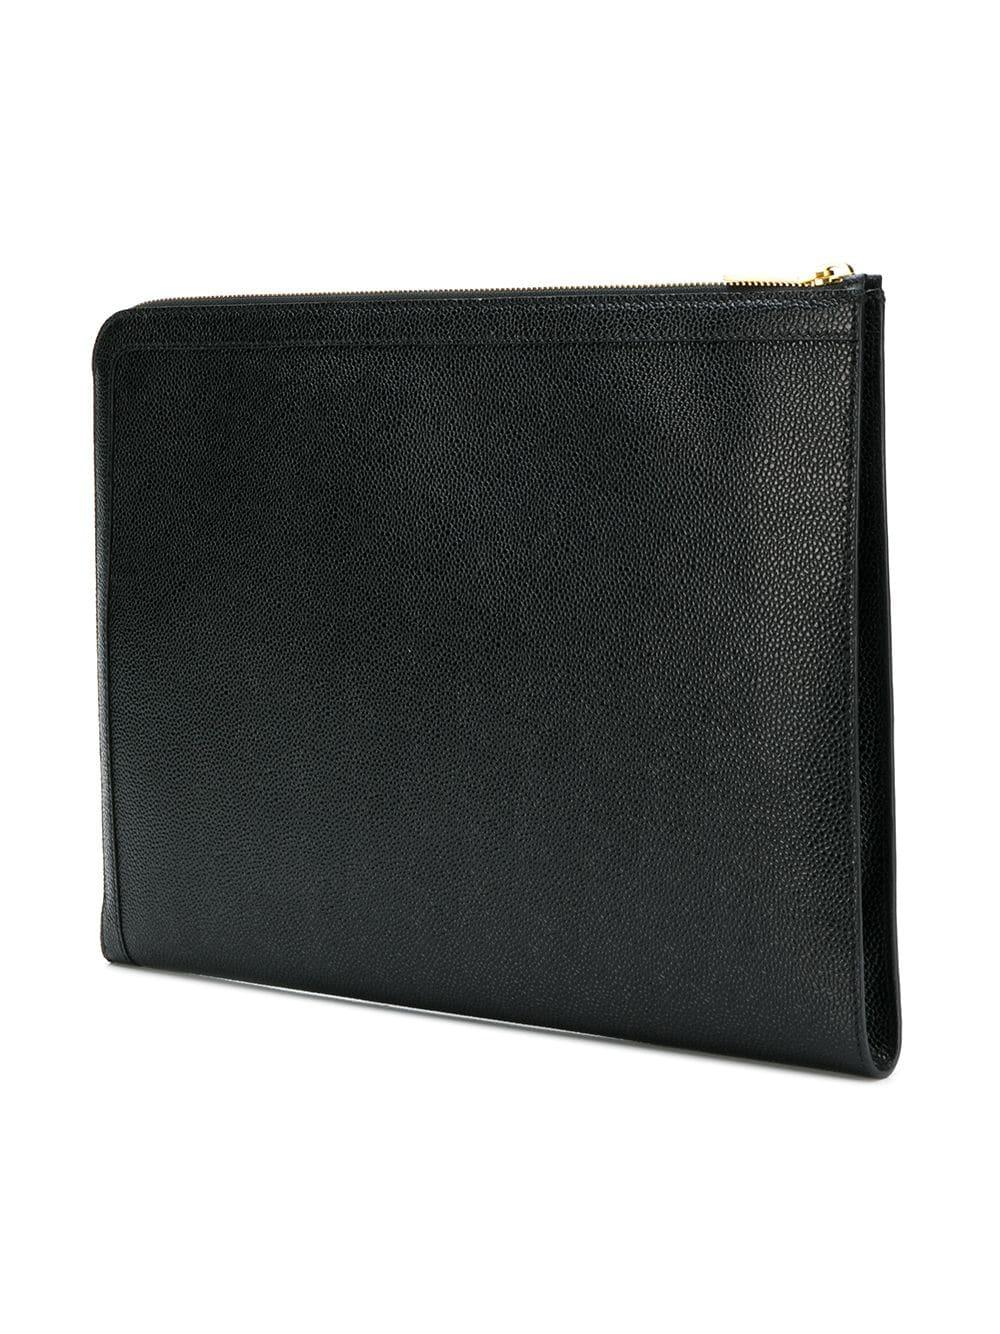 b2673b4dcb Thom Browne - Black Pebbled Leather Document Gusset Folio for Men - Lyst.  View fullscreen